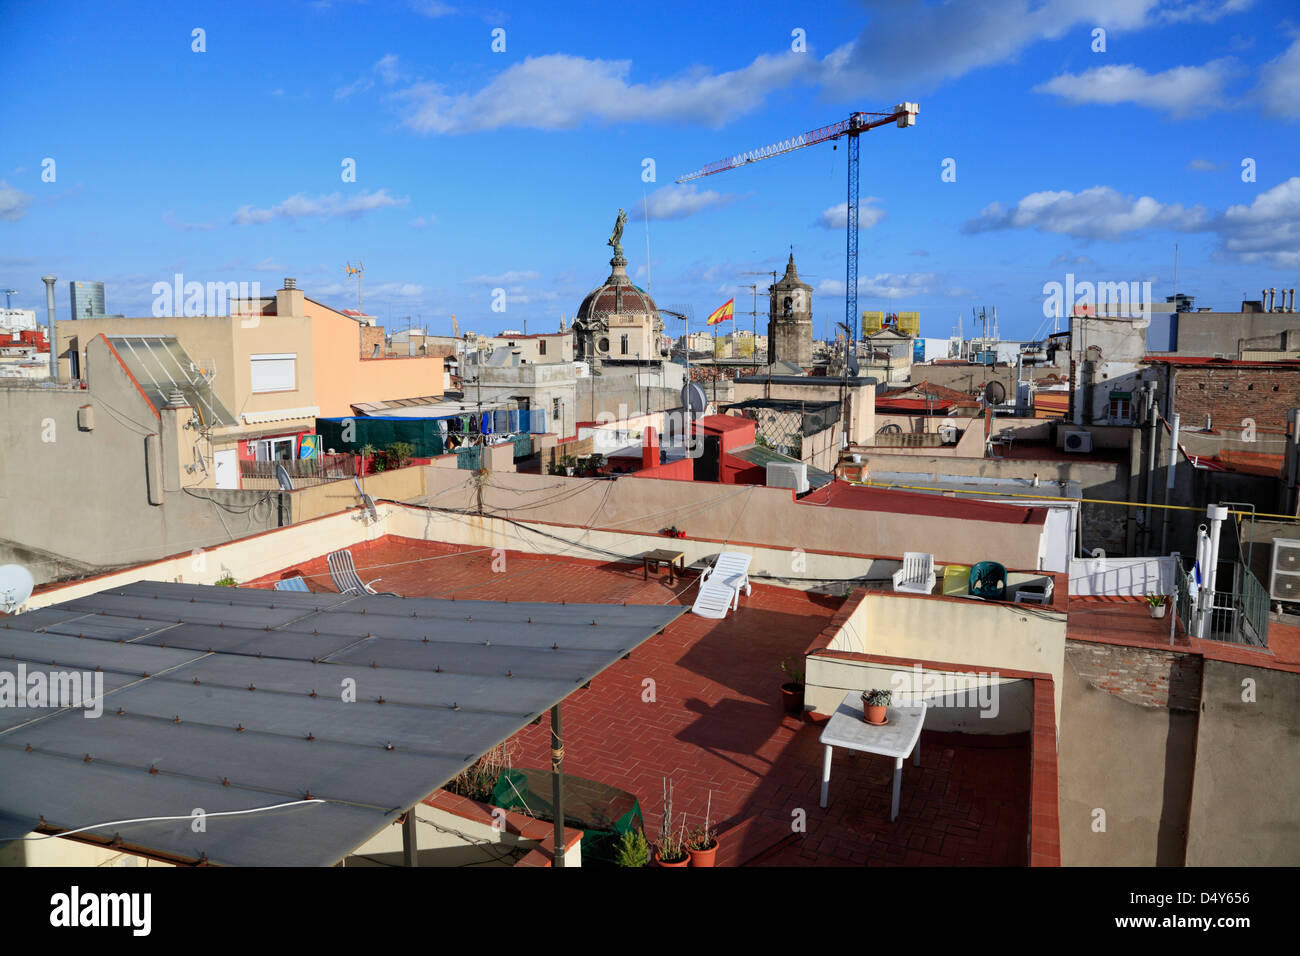 View across the roofs of Barri Gotic, Barcelona, Spain - Stock Image